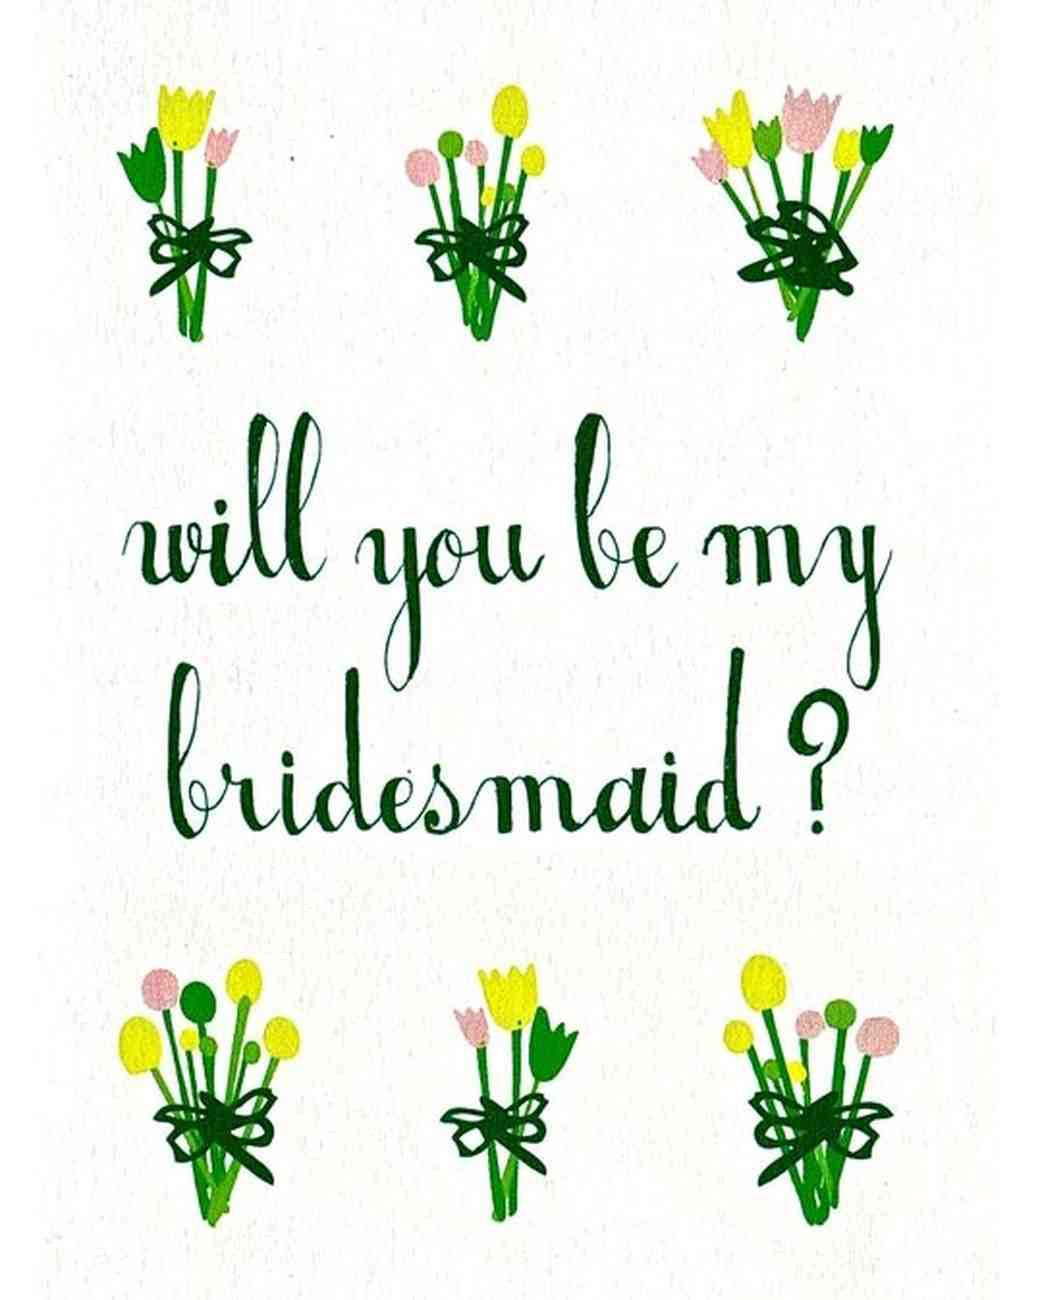 mr-boddingtons-studio-will-you-be-my-bridesmaid-card-0216.jpg